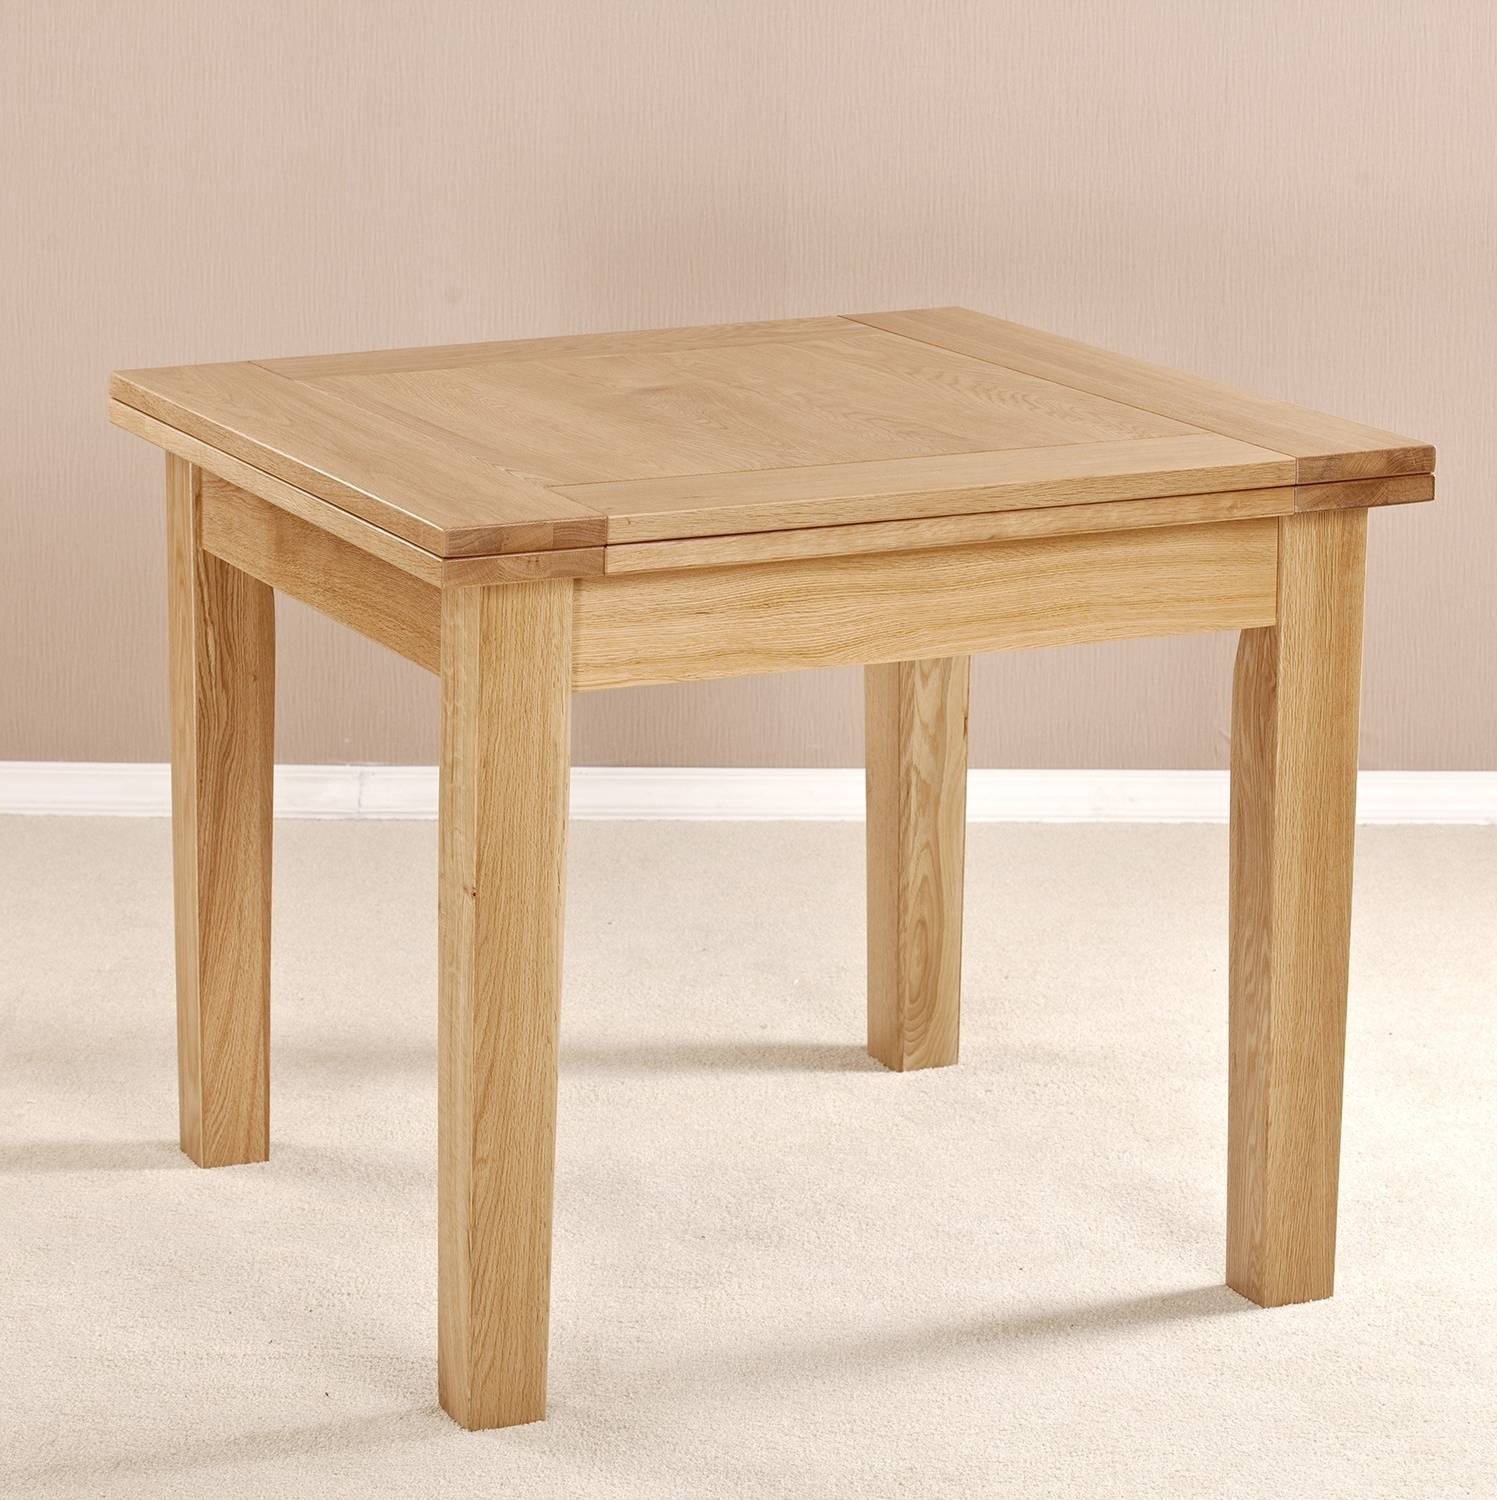 Dining: Square Extending Dining Table With Most Recently Released Small Square Extending Dining Tables (View 5 of 25)